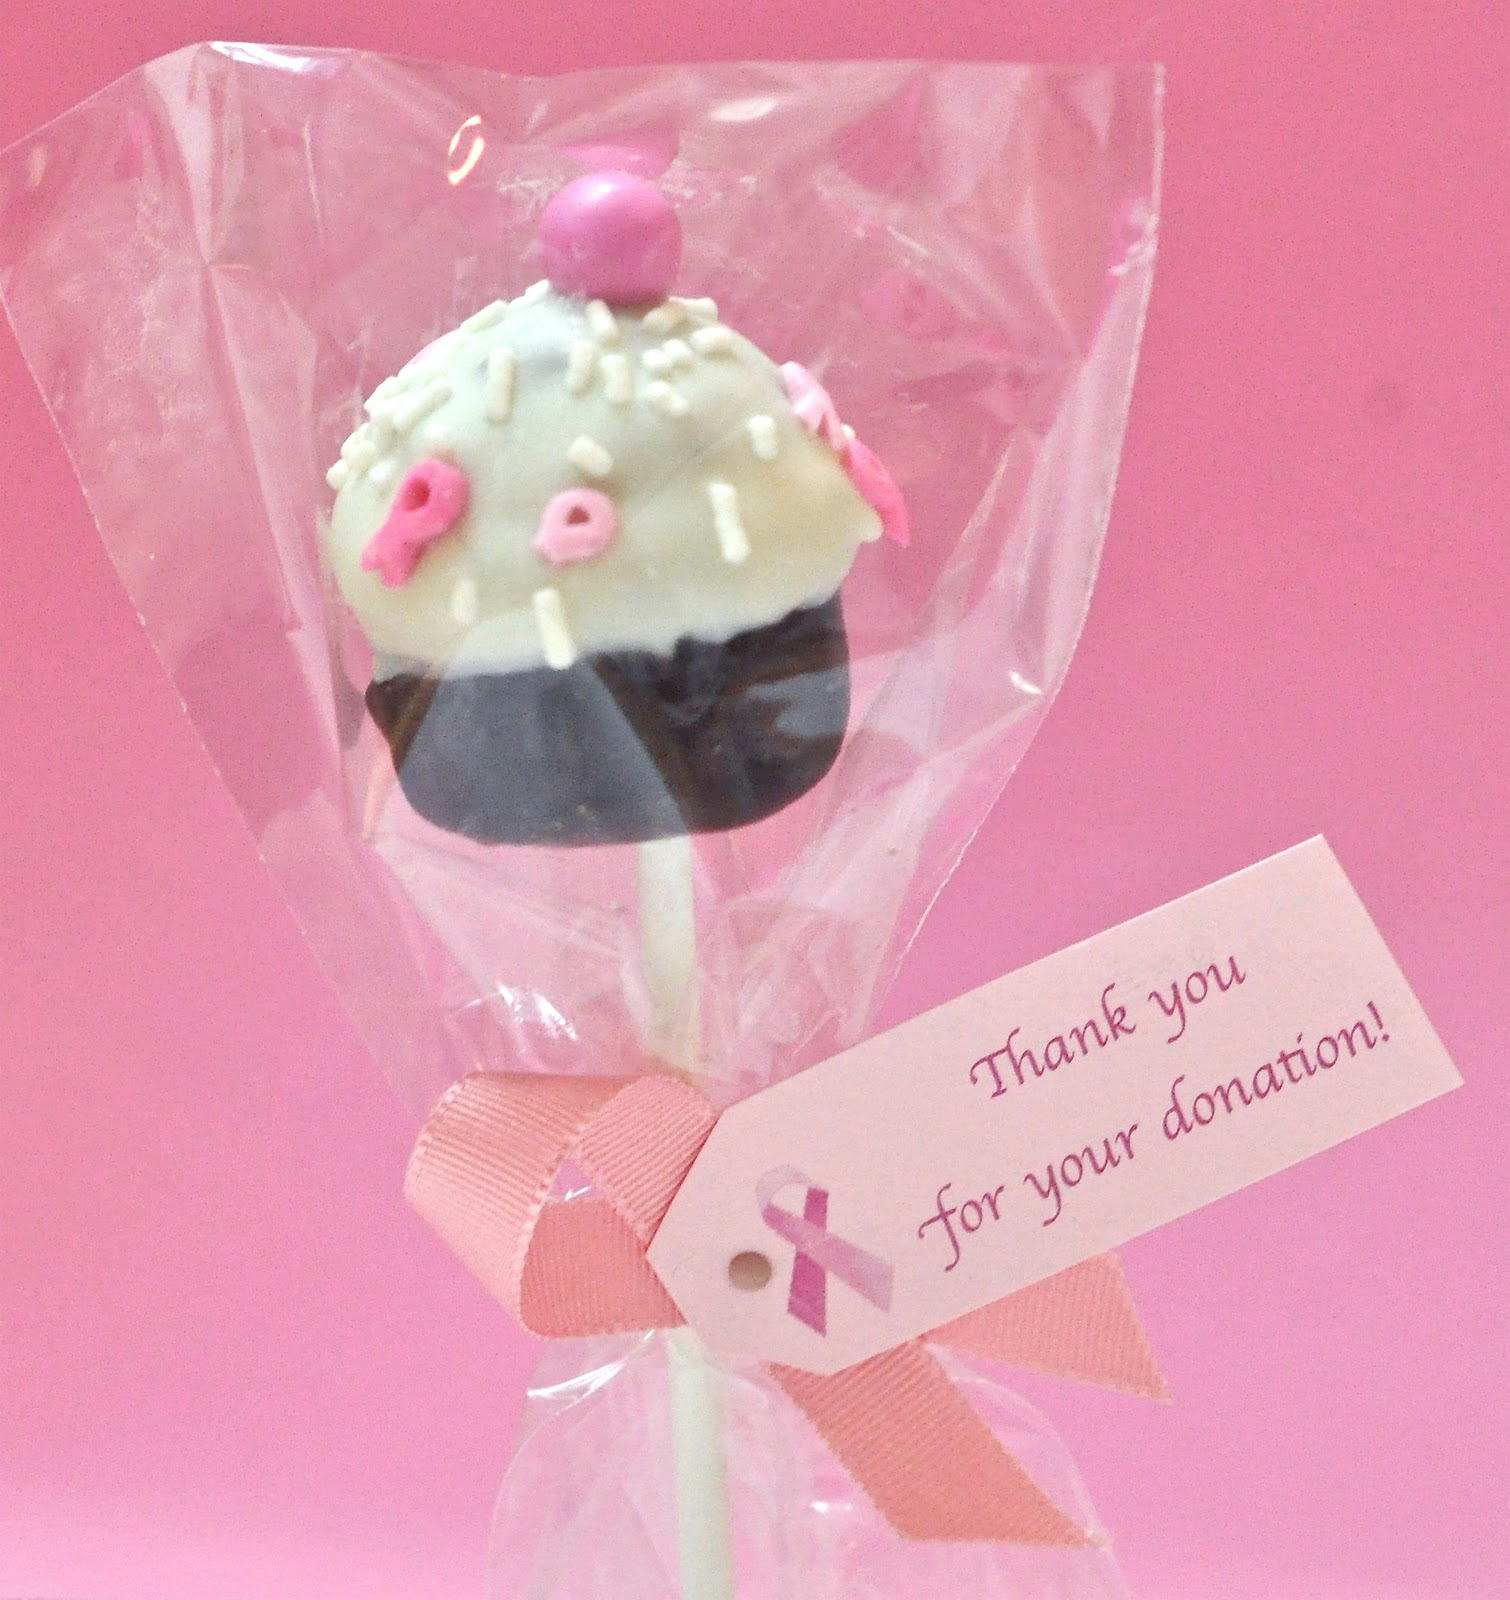 Kiwi Cakes: Pink cake pops - to raise awareness for Breast Cancer Month